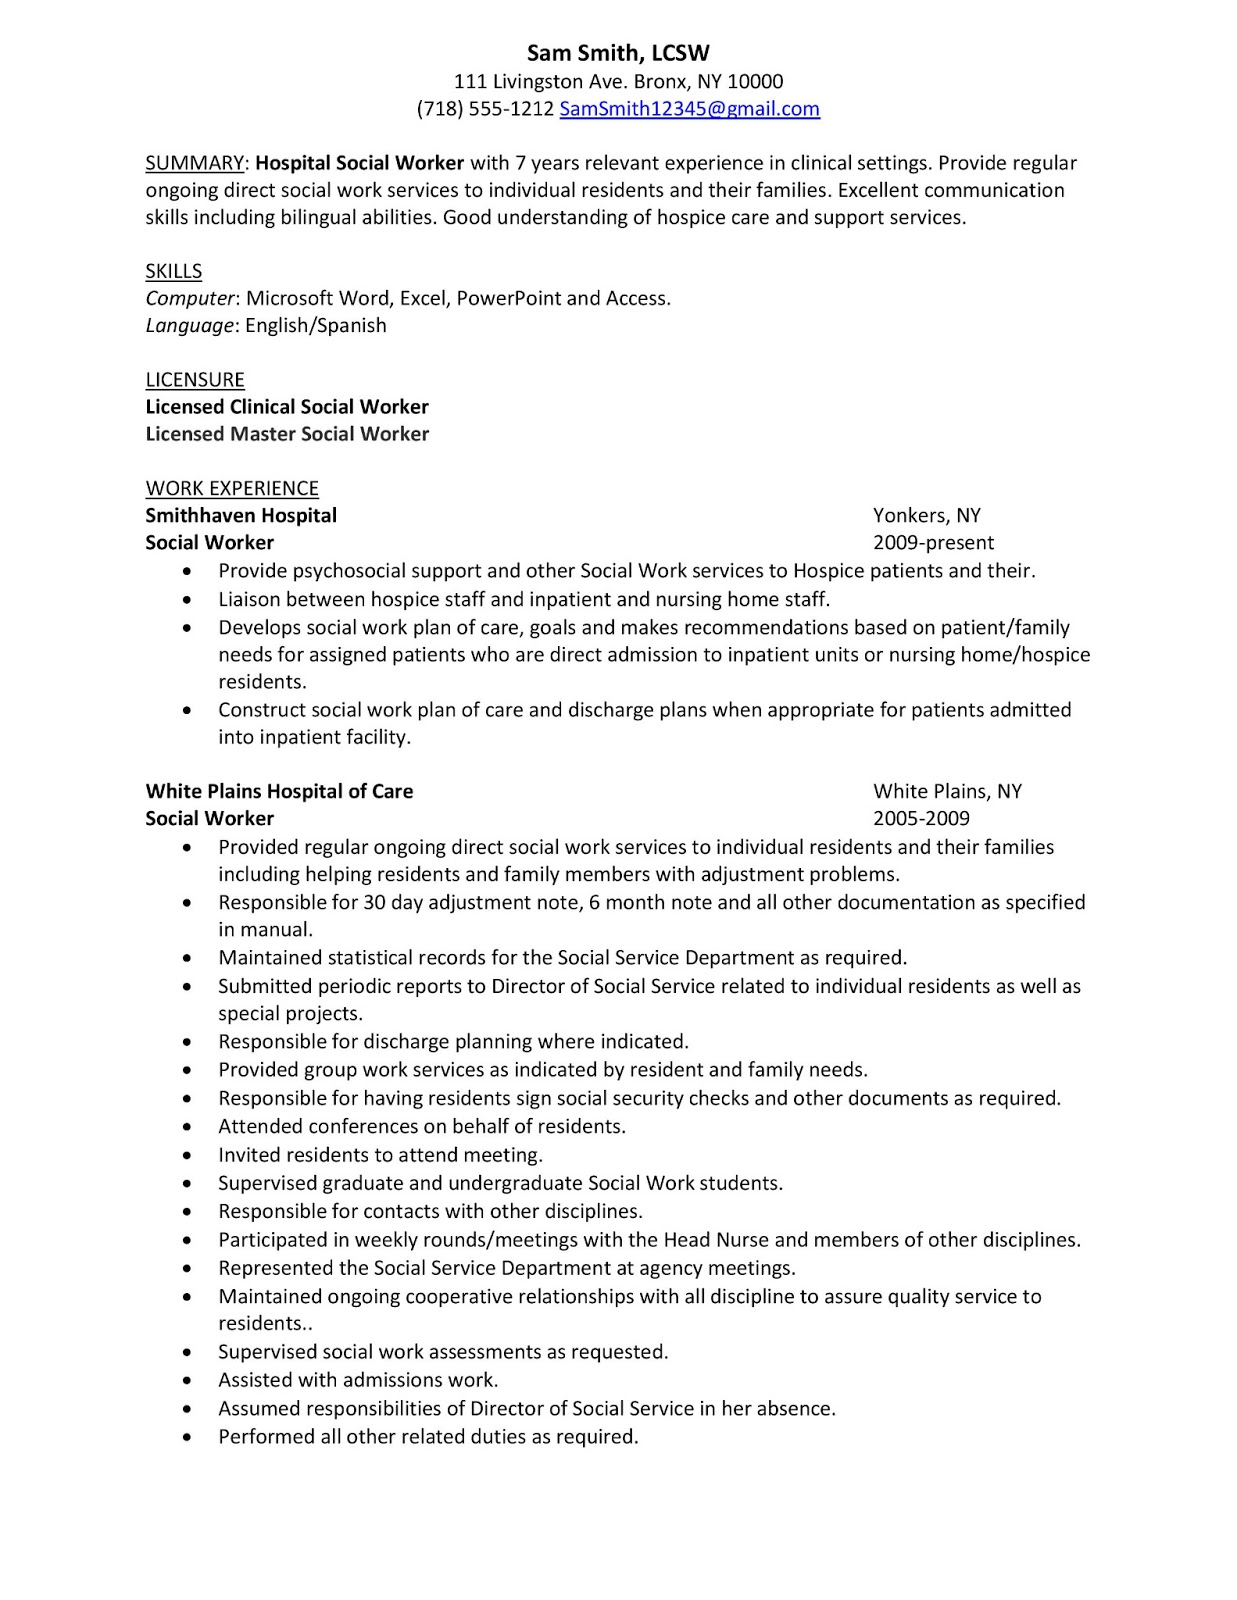 Social Work Resumes | Sample Resume Hospital Social Worker Career Advice Pro